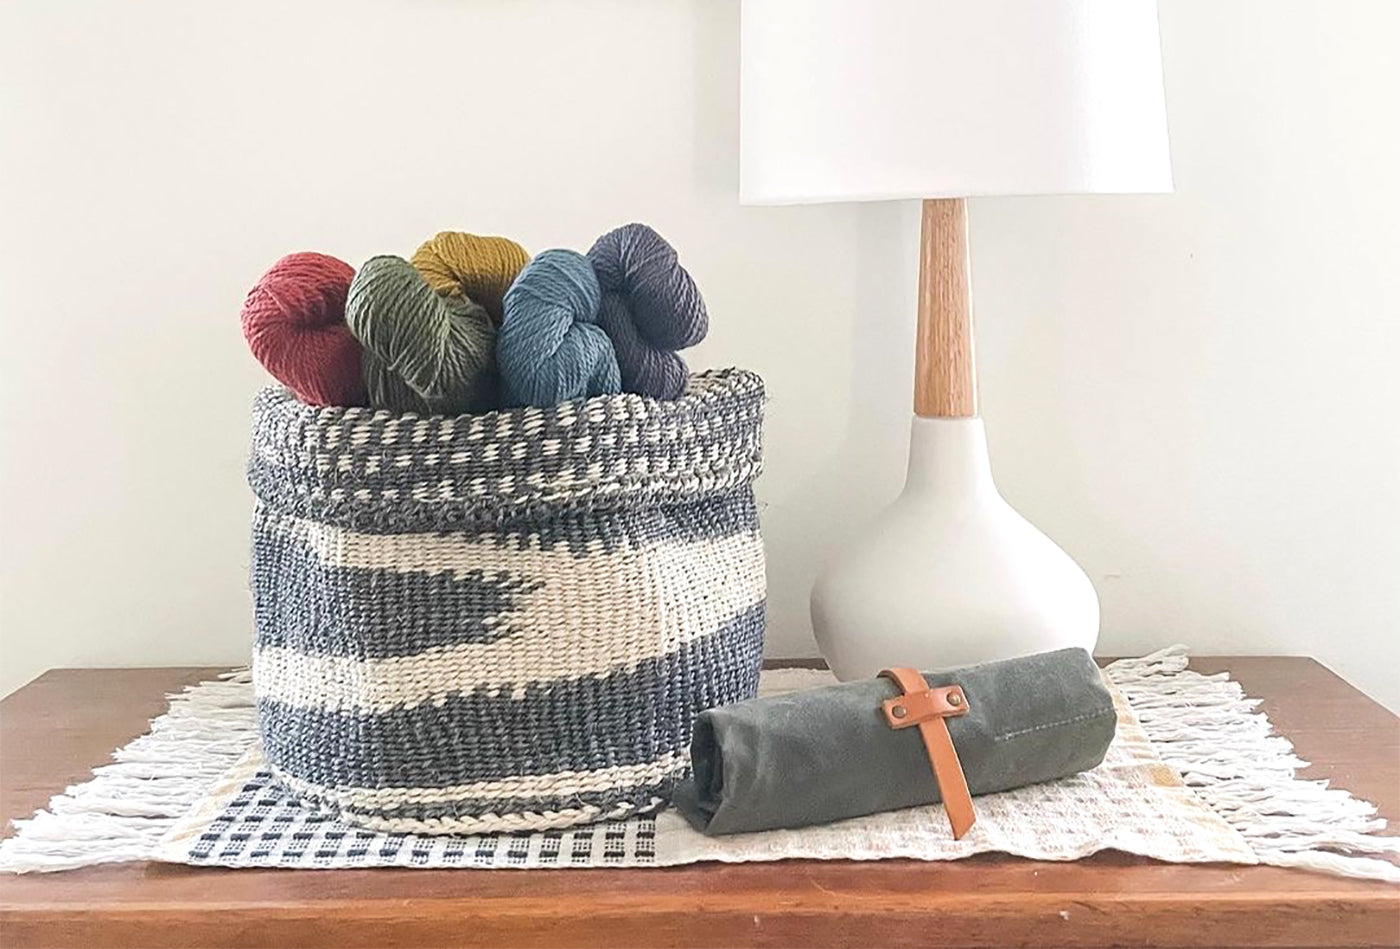 This is an image of a basket full of yarn sitting on top of a desk next to a lamp and a canvas roll for knitting needles